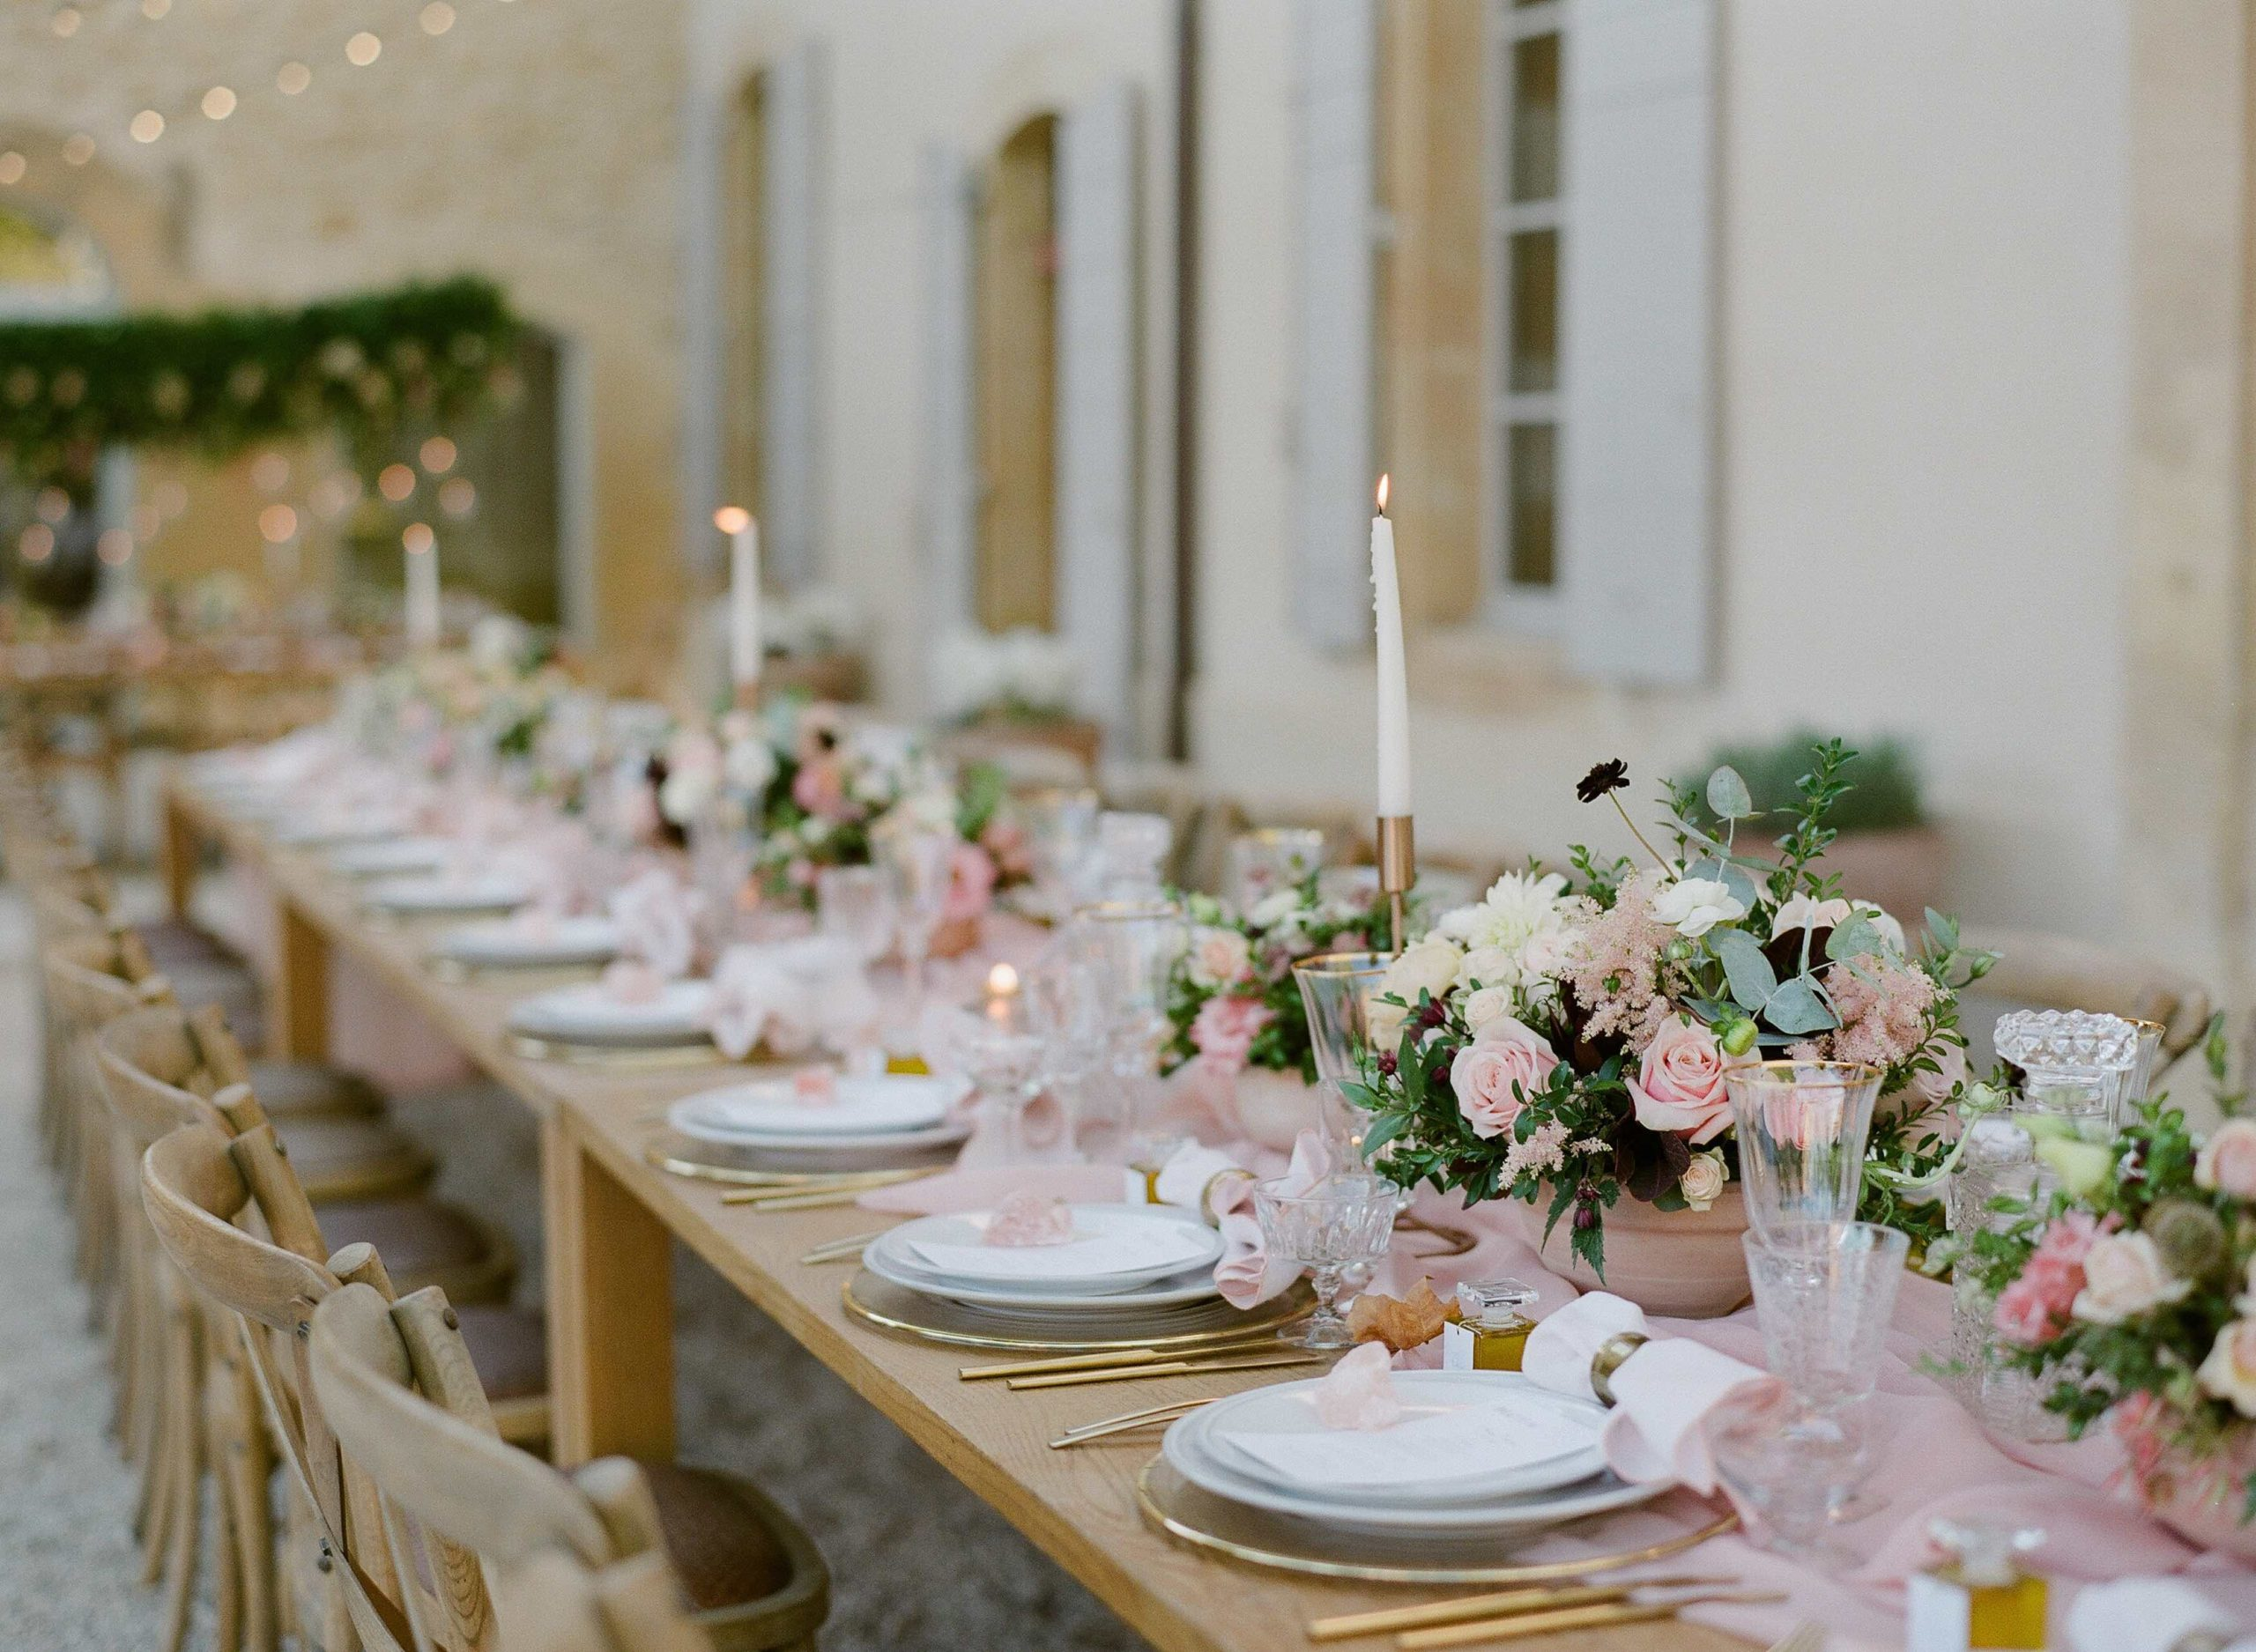 Wedding table decor with long wooden tables, mauve silk runners, pastel flowers with darker accents